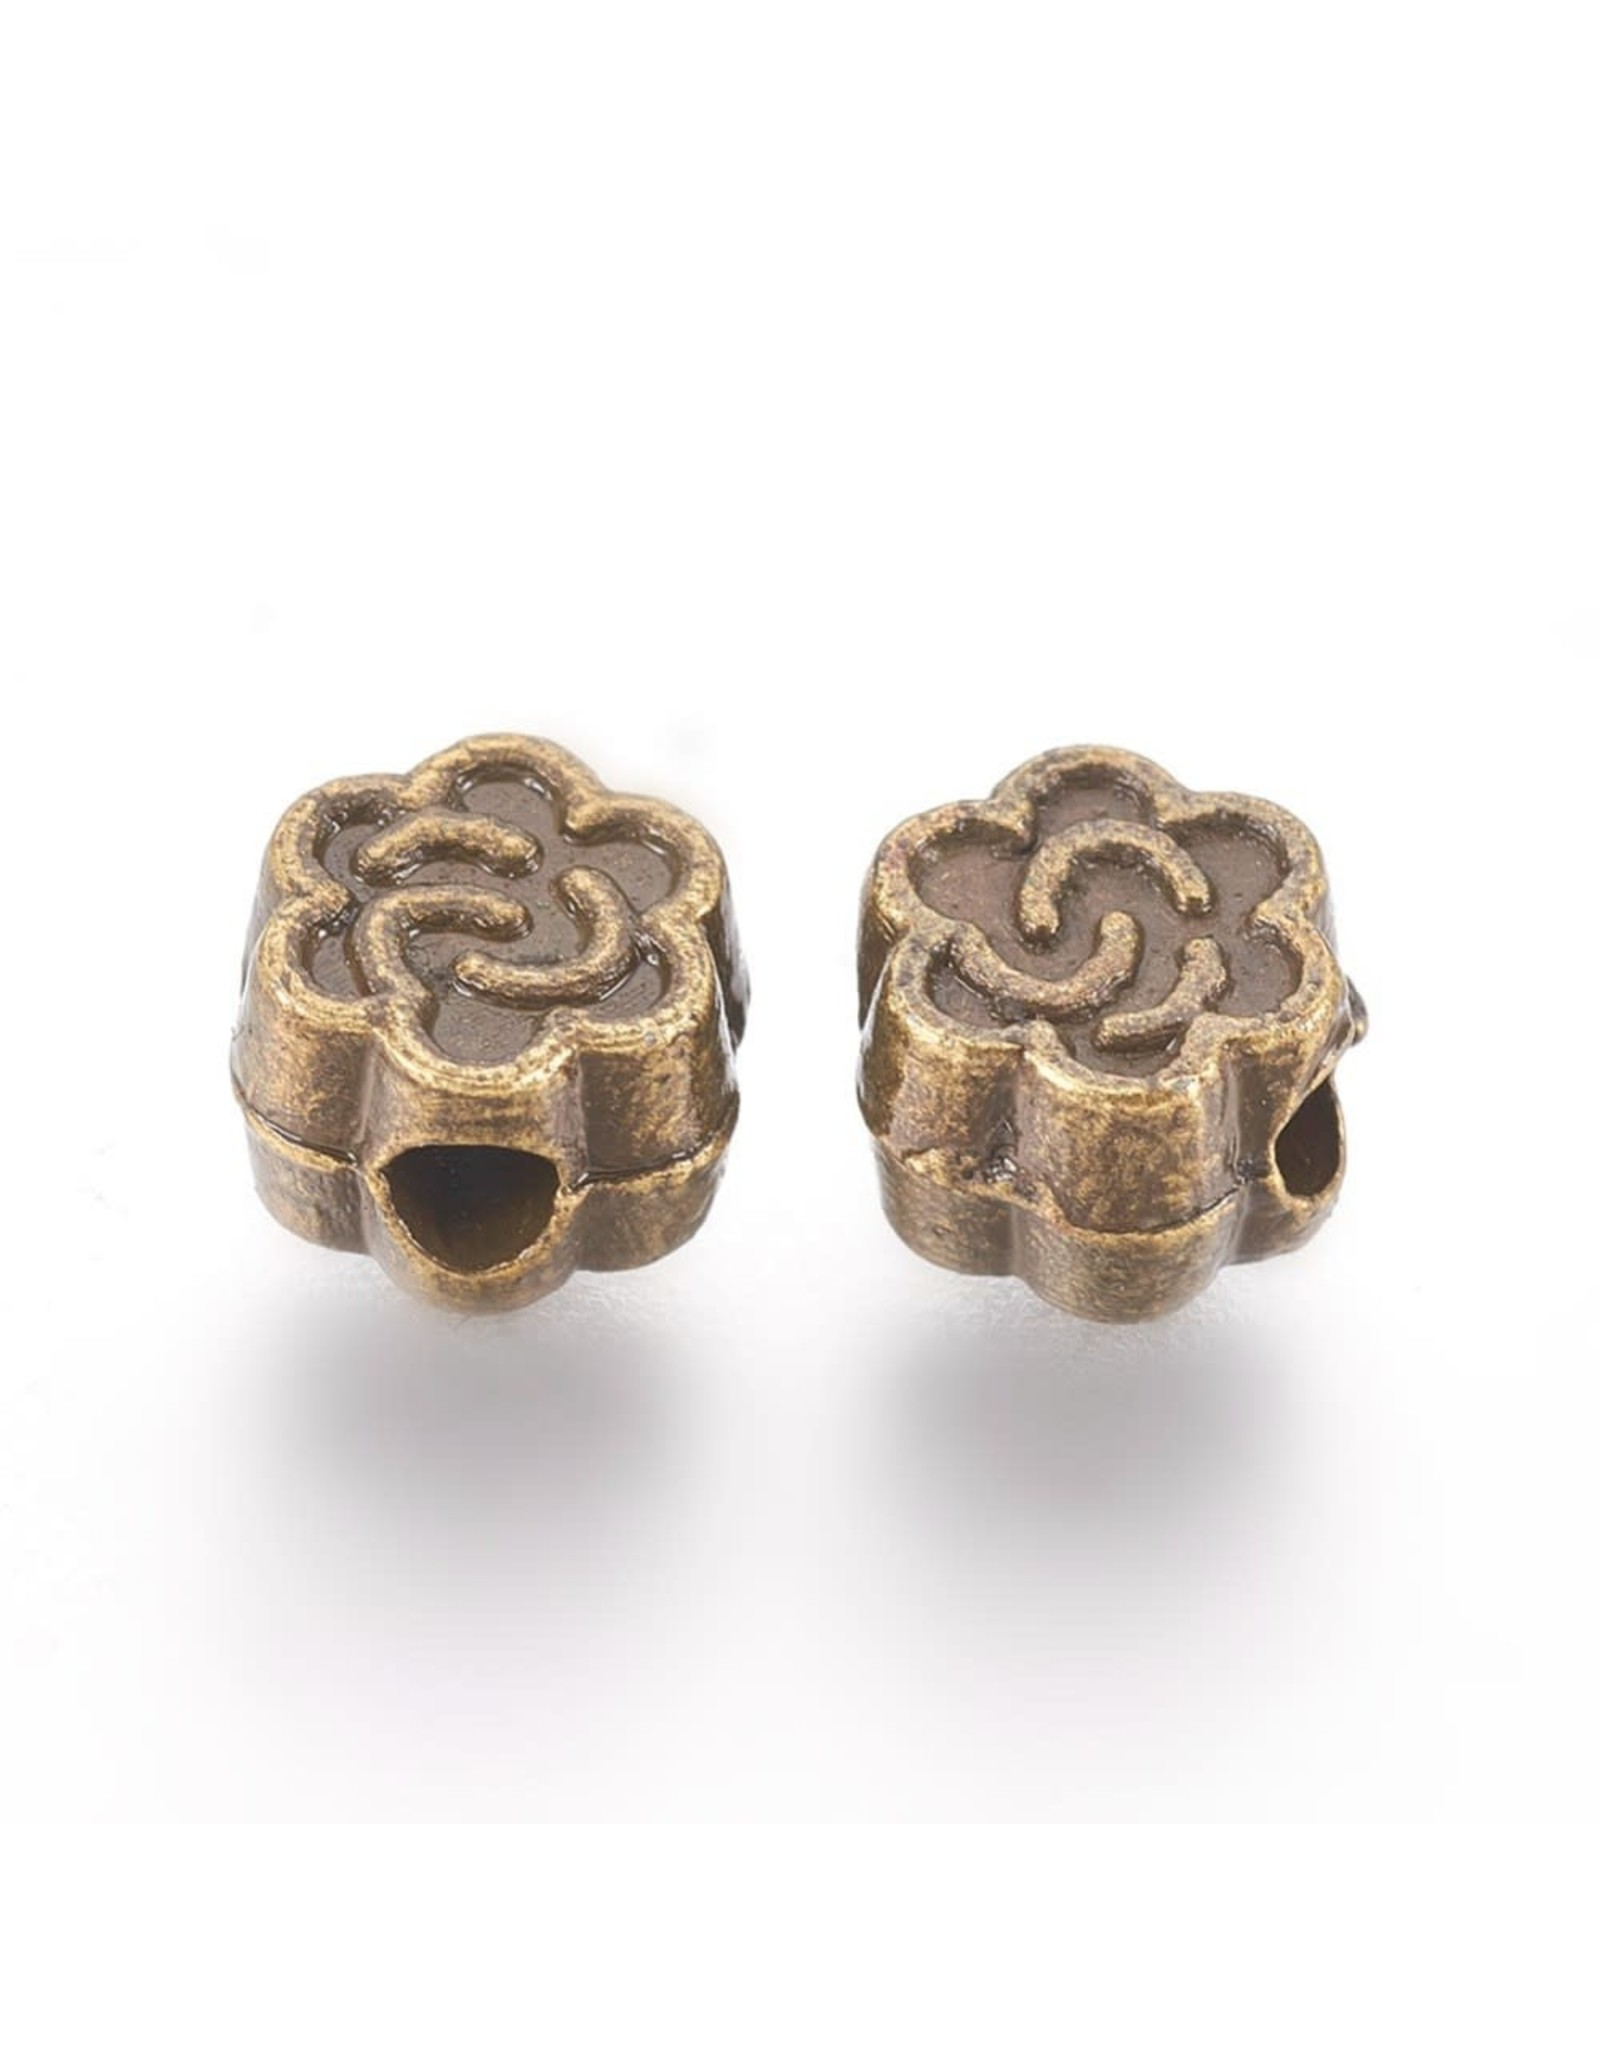 Flower Bead Antique Brass 5x3mm x50 NF